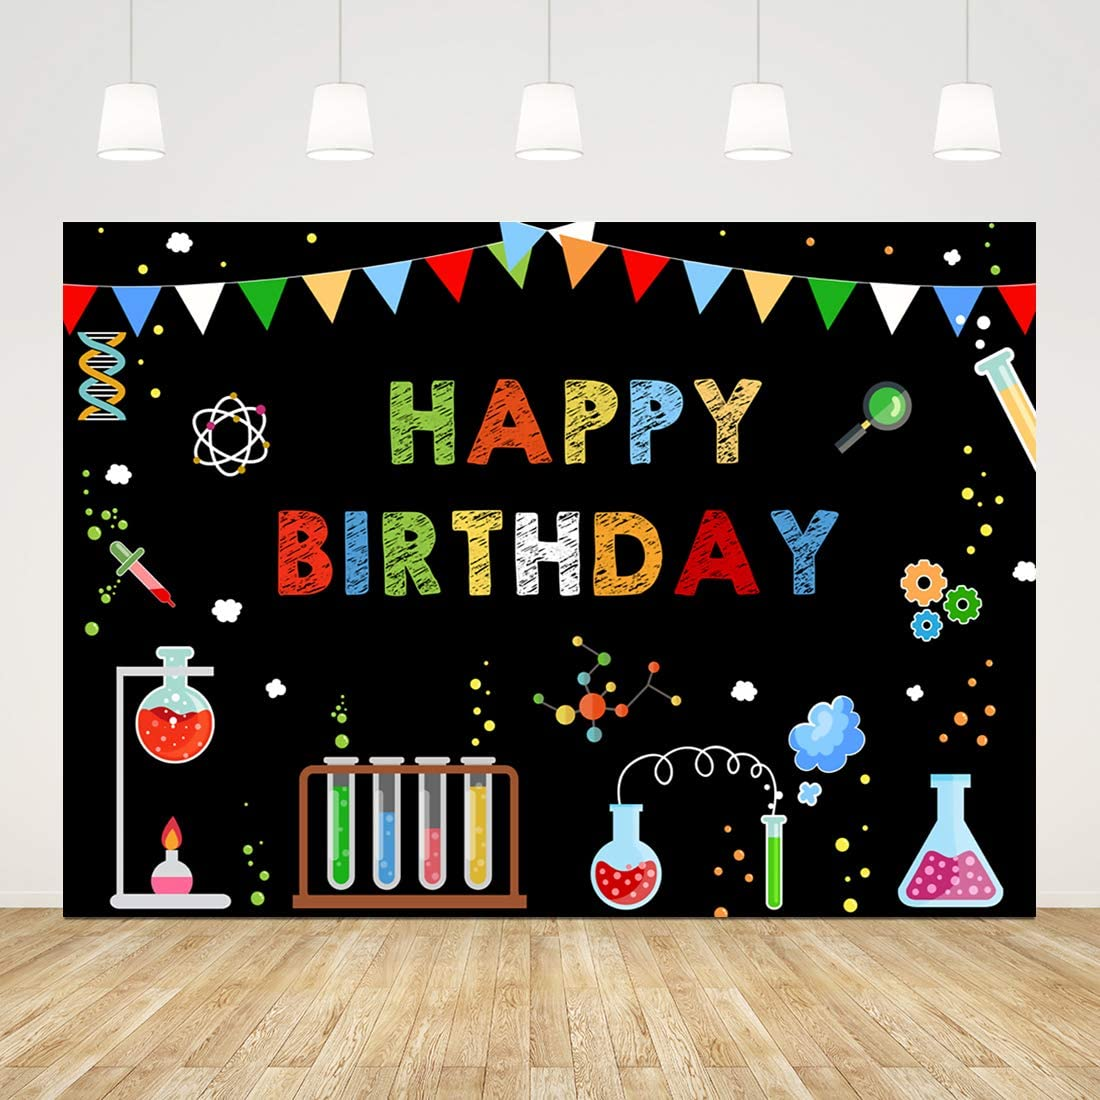 Happy Birthday Backdrop for Kids 1st Birthday Background for Boy 7x5ft Science Party Birthday Party Supplies for Boys Girls Birthday Photo Booth Props Cake Table Decor Party Photoshoot Background